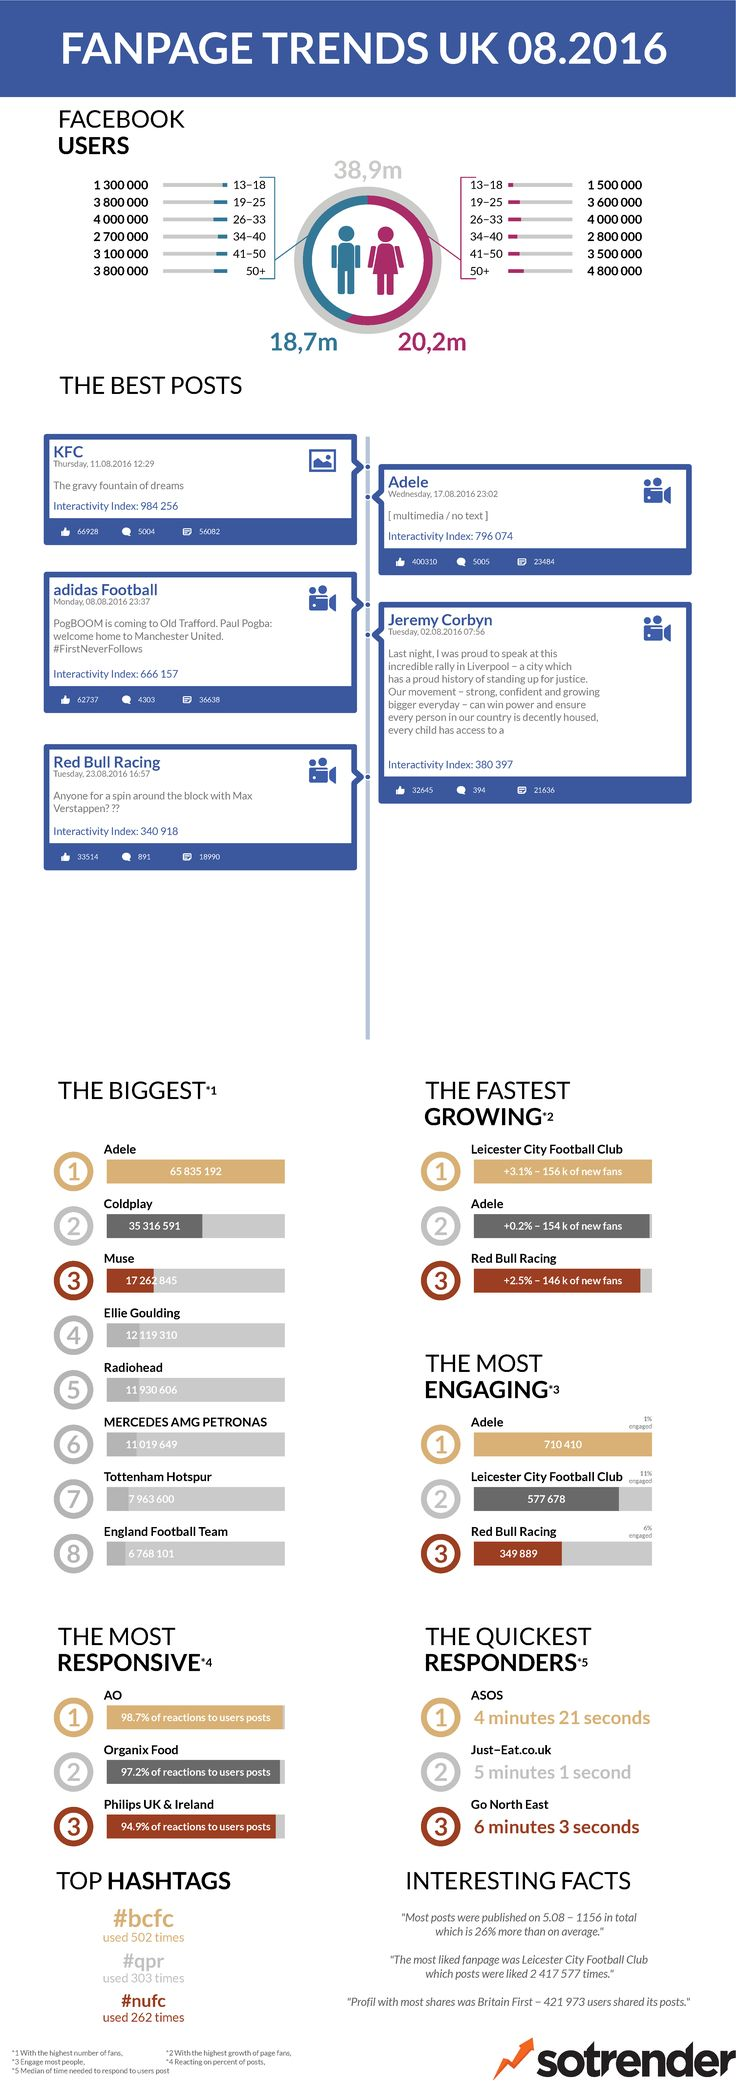 #FanpageTrends UK August 2016 #reports #infographic #socialmedia #growthhacking